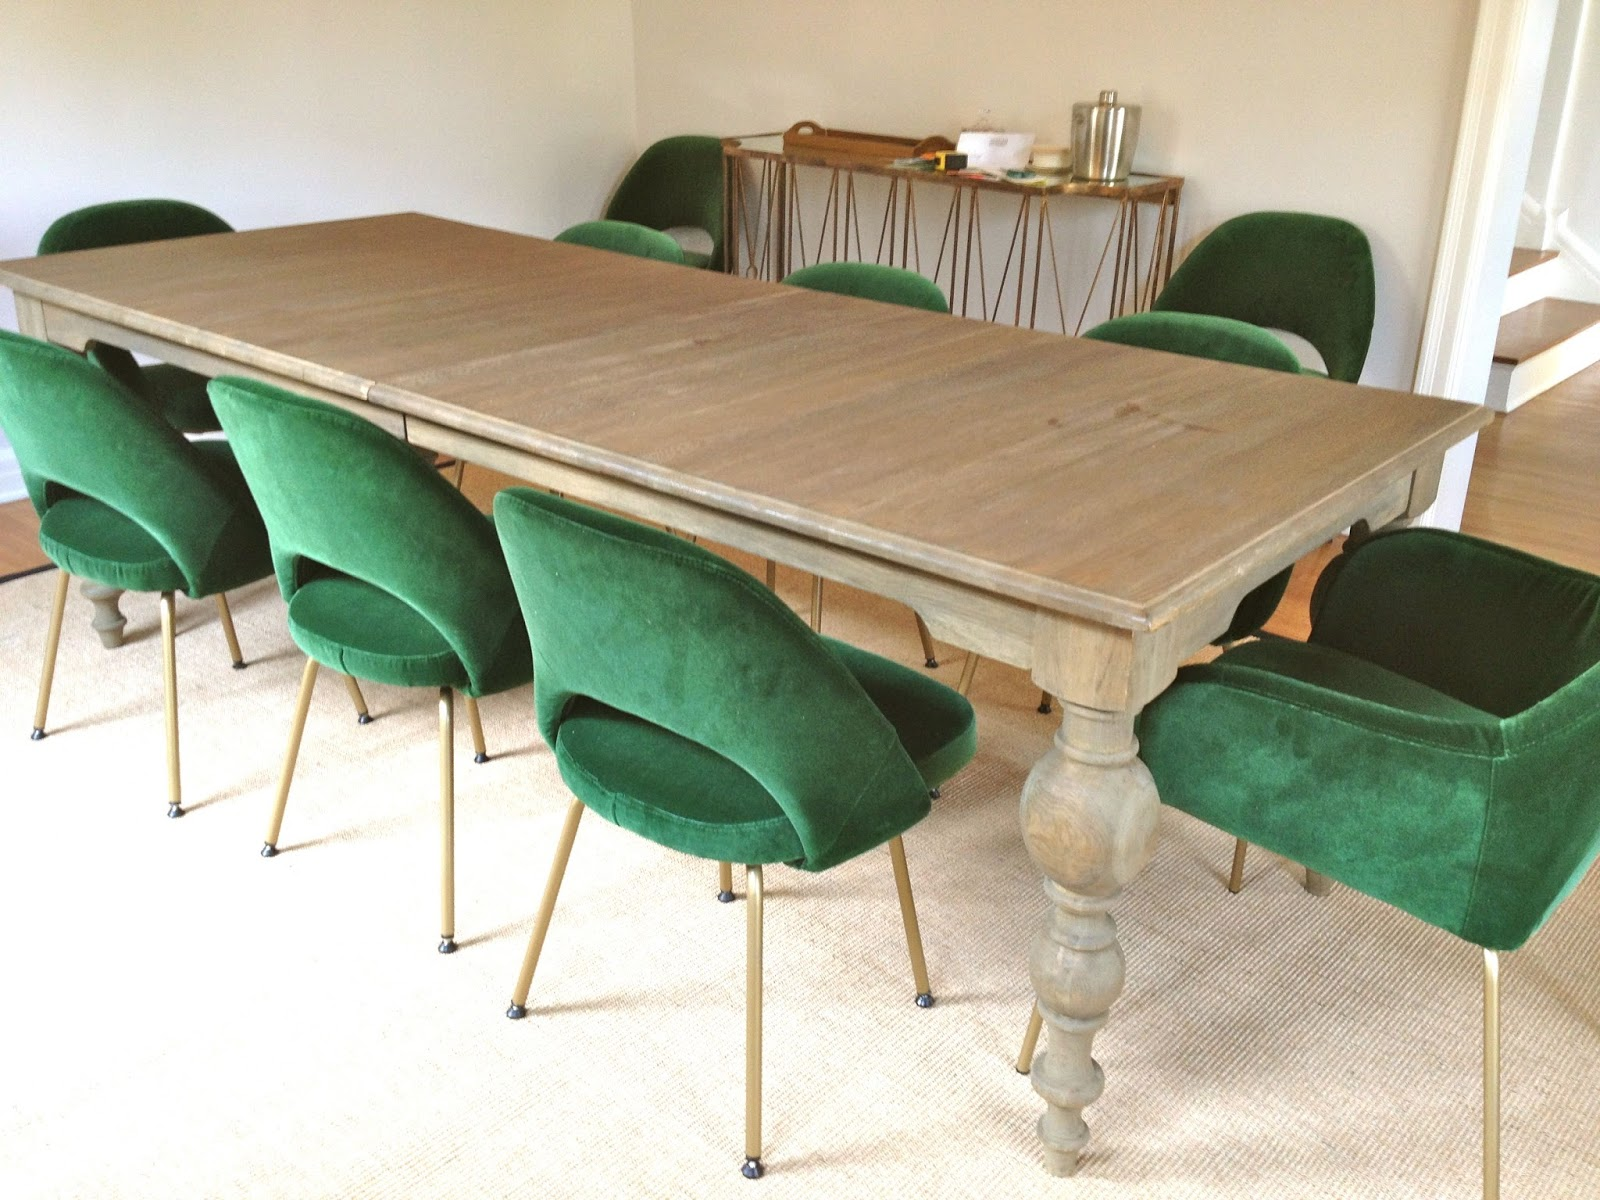 Green Dining Room Chairs Ergonomic Chair Design Rosa Beltran Sneak Peek Velvet Saarinen